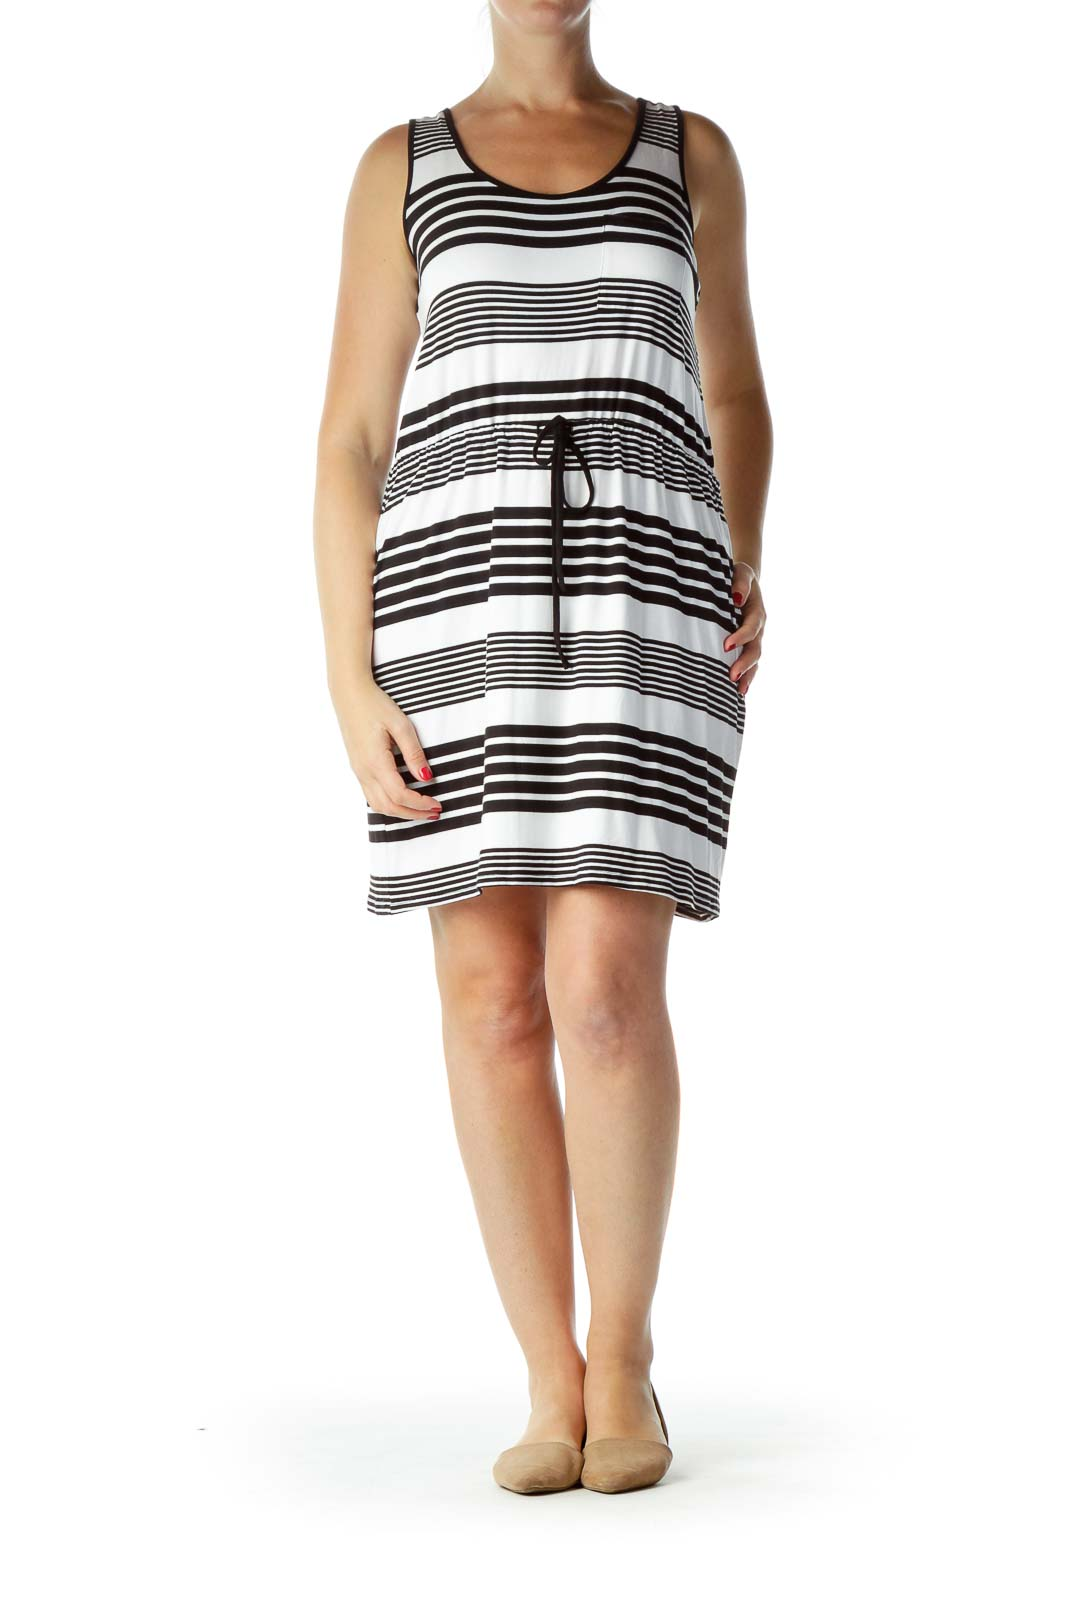 Black White Striped Jersey Dress